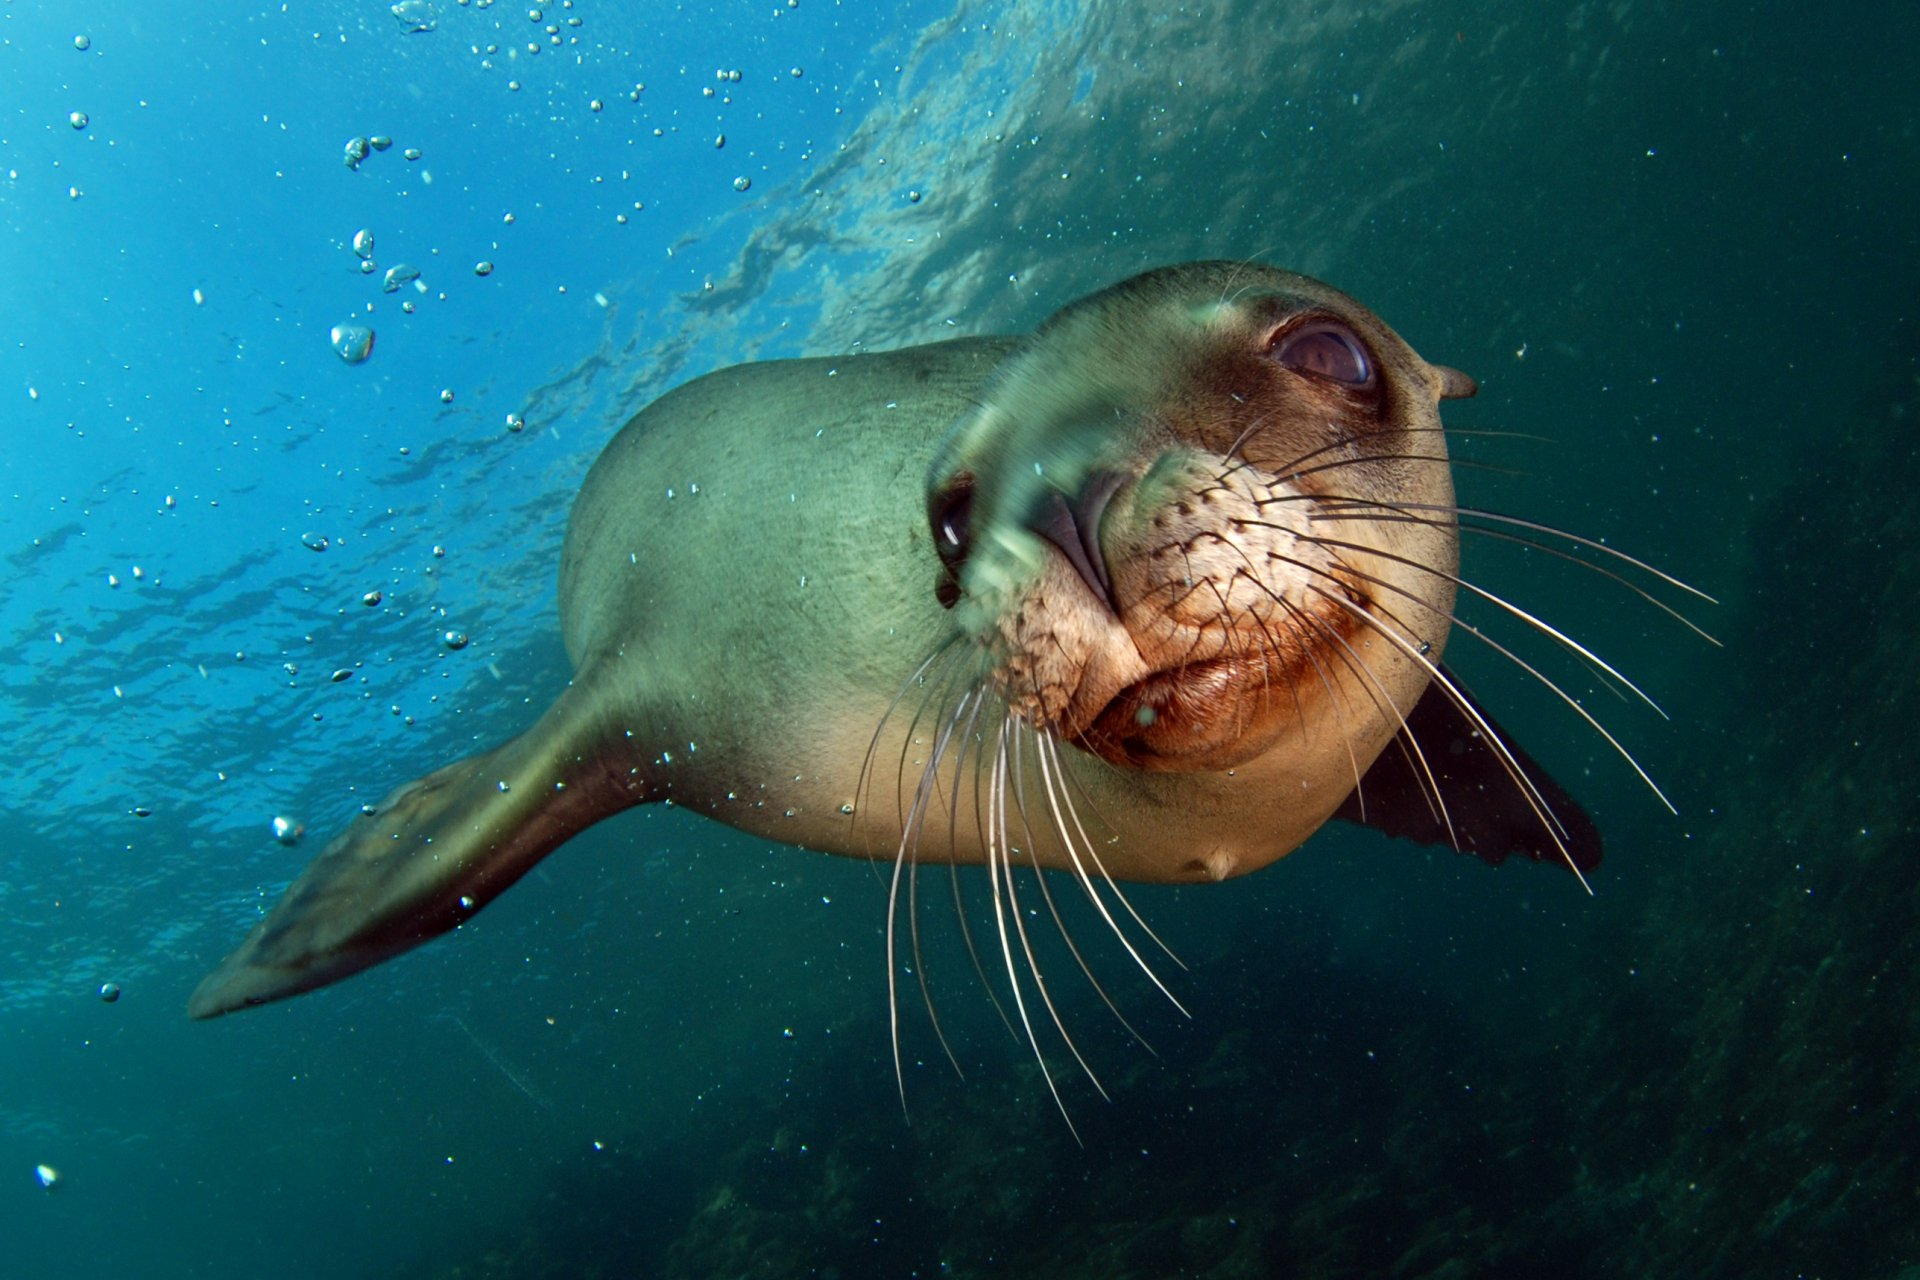 Cute Turtle Wallpaper For Iphone Sea Lion Full Hd Wallpaper And Background Image